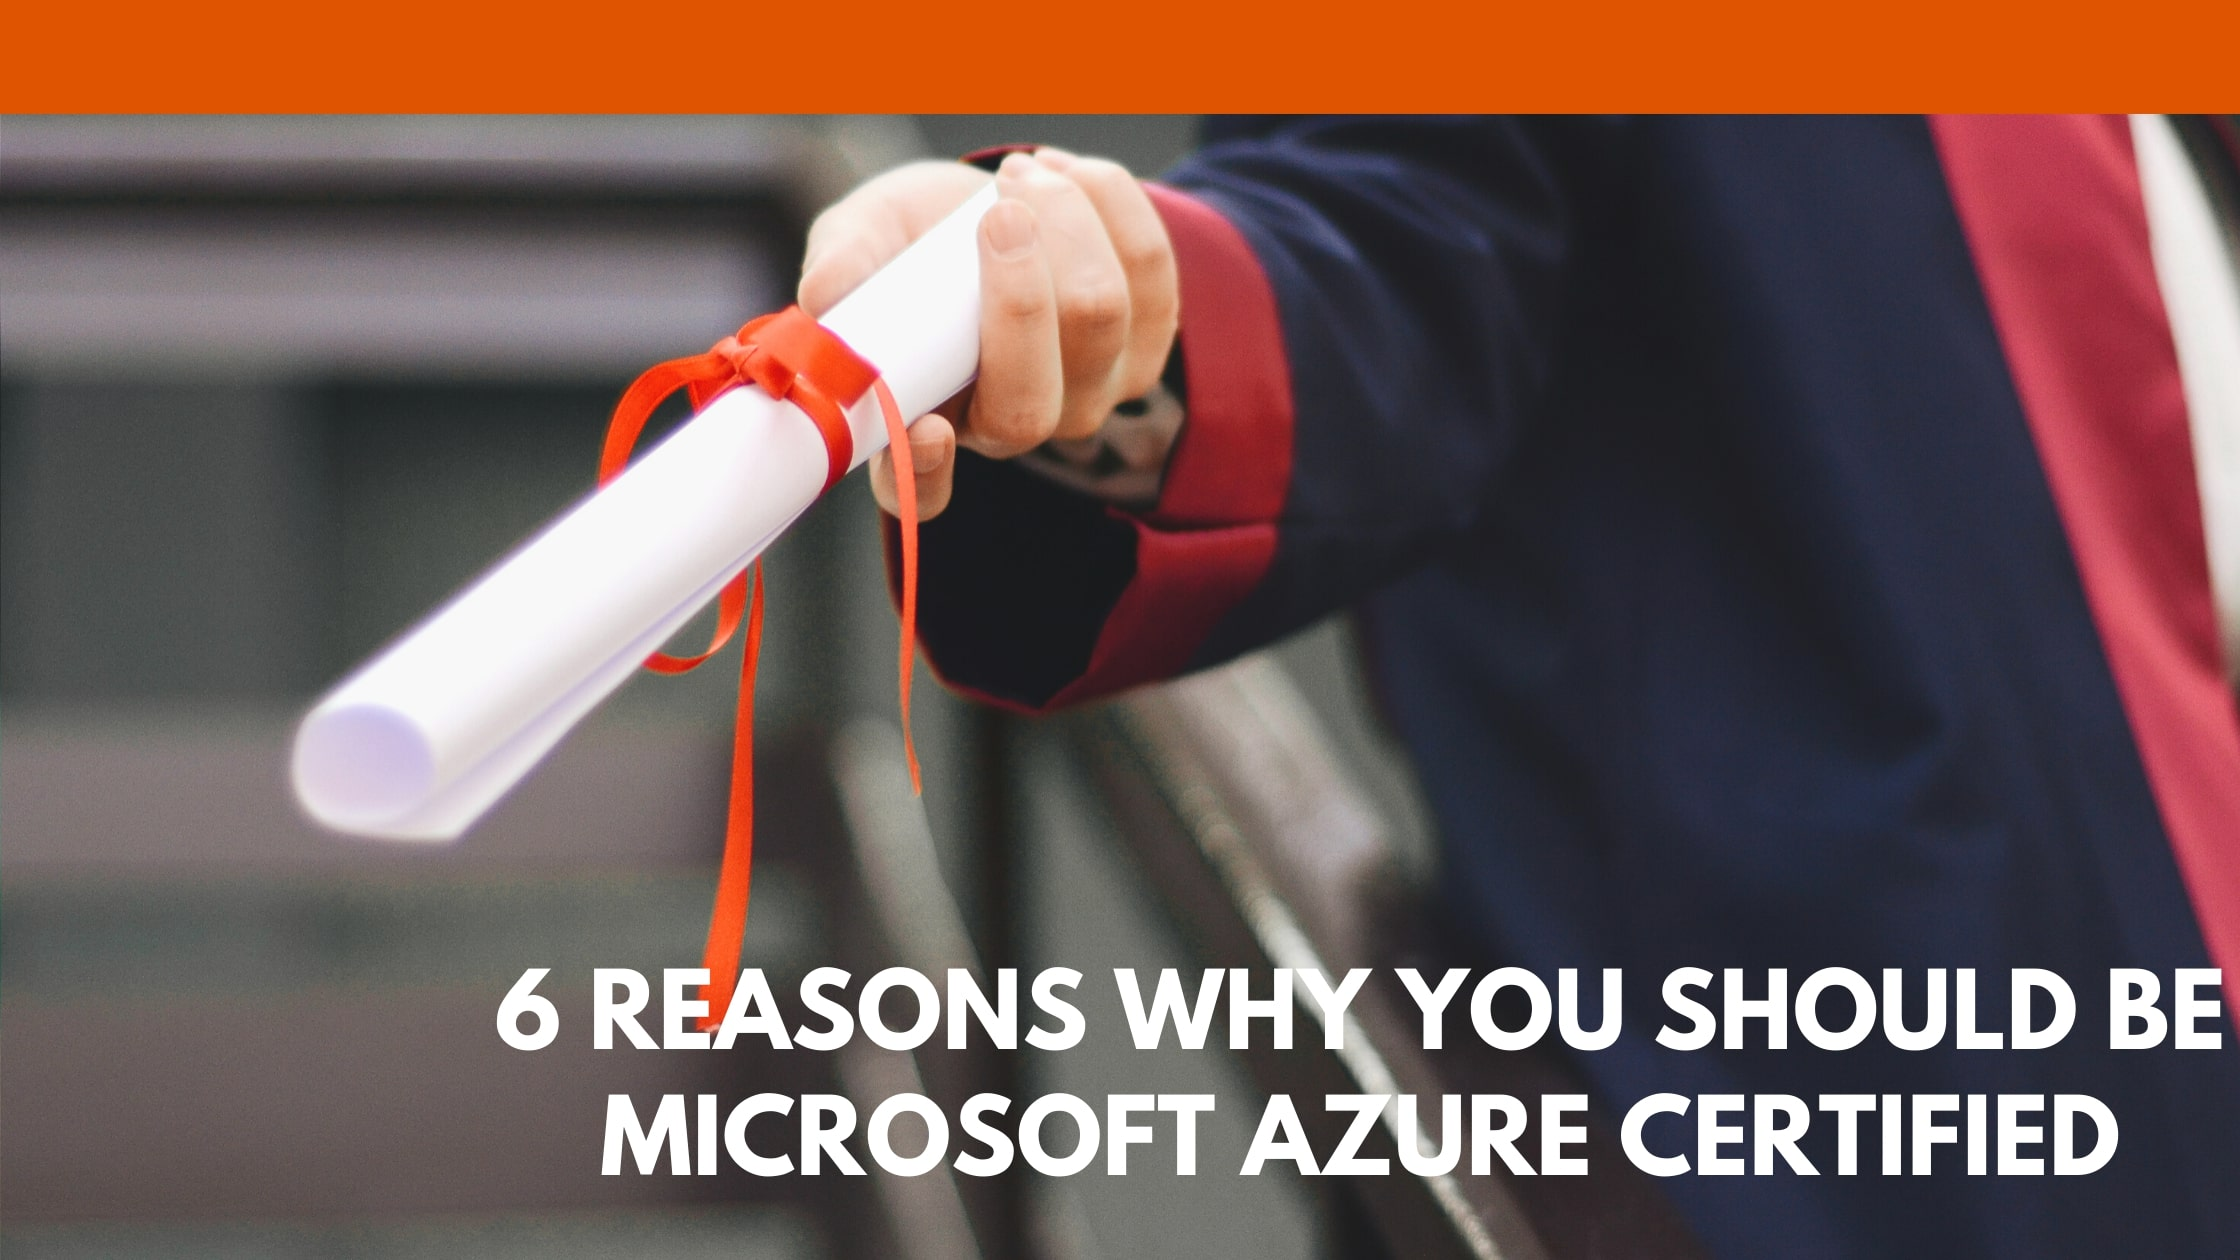 img-6-reasons-why-you-should-be-microsoft-azure-certified.jpg